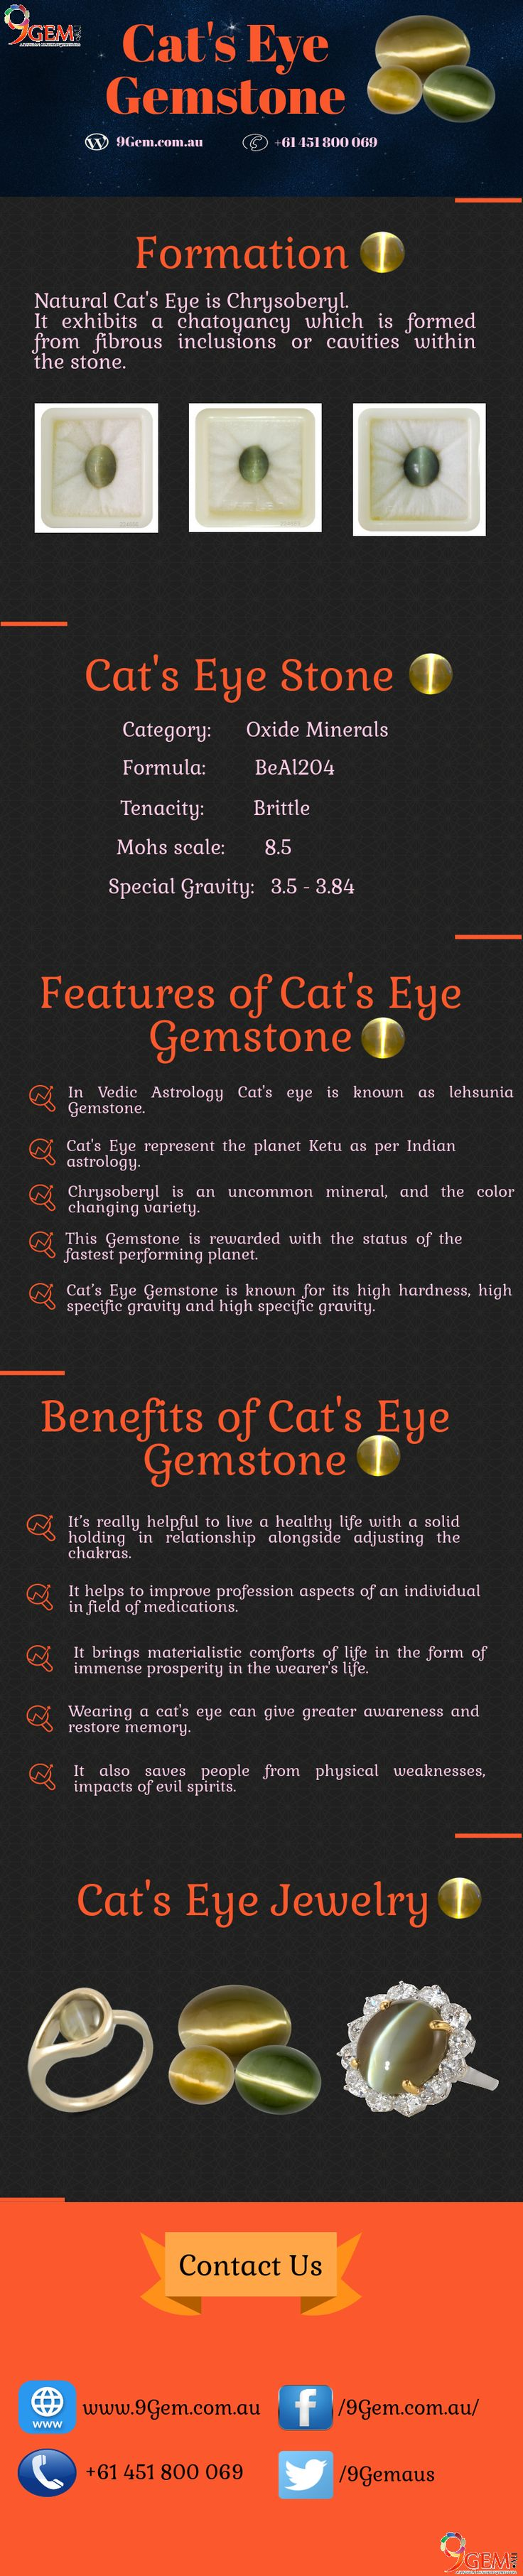 "Cat's Eye Stone is also called as ""Lehsunia"" stone in Hindi. In the infographic you will know about what is Cat's Eye gemstone, astrological names of cat's eye and what are the features and benefits of lehsunia gemstone in Vedic astrology."